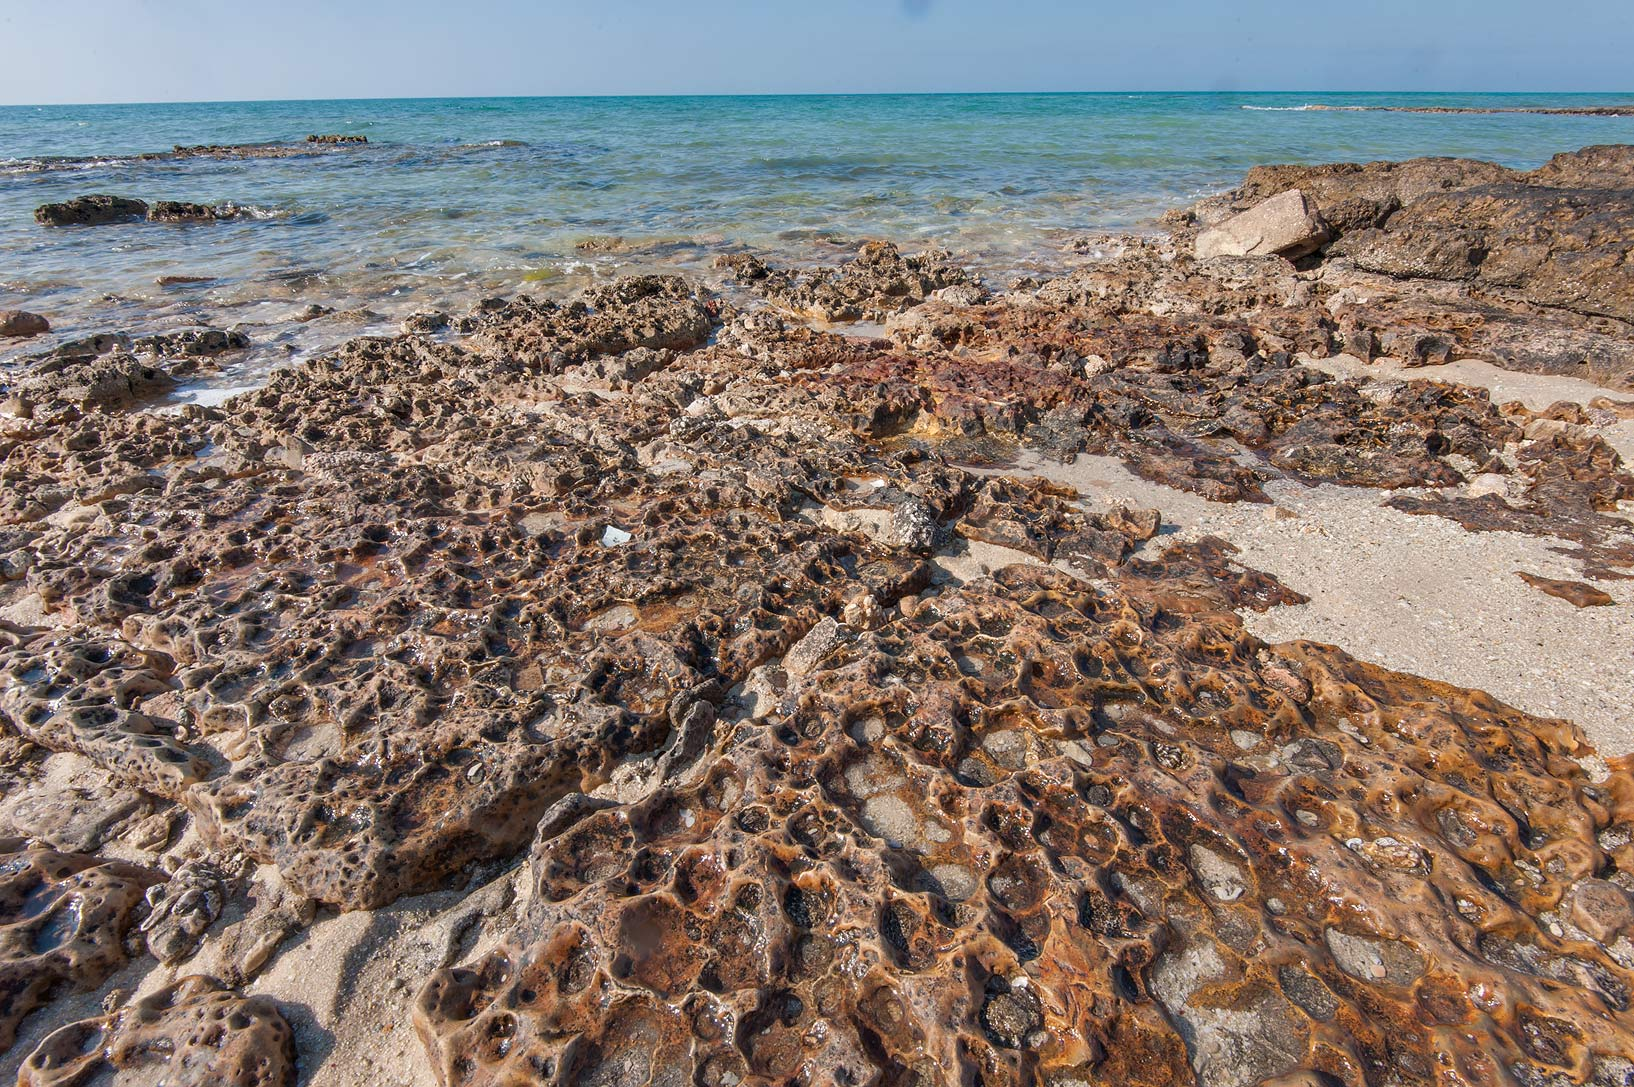 Texture of stones on a beach in Dukhan. Qatar